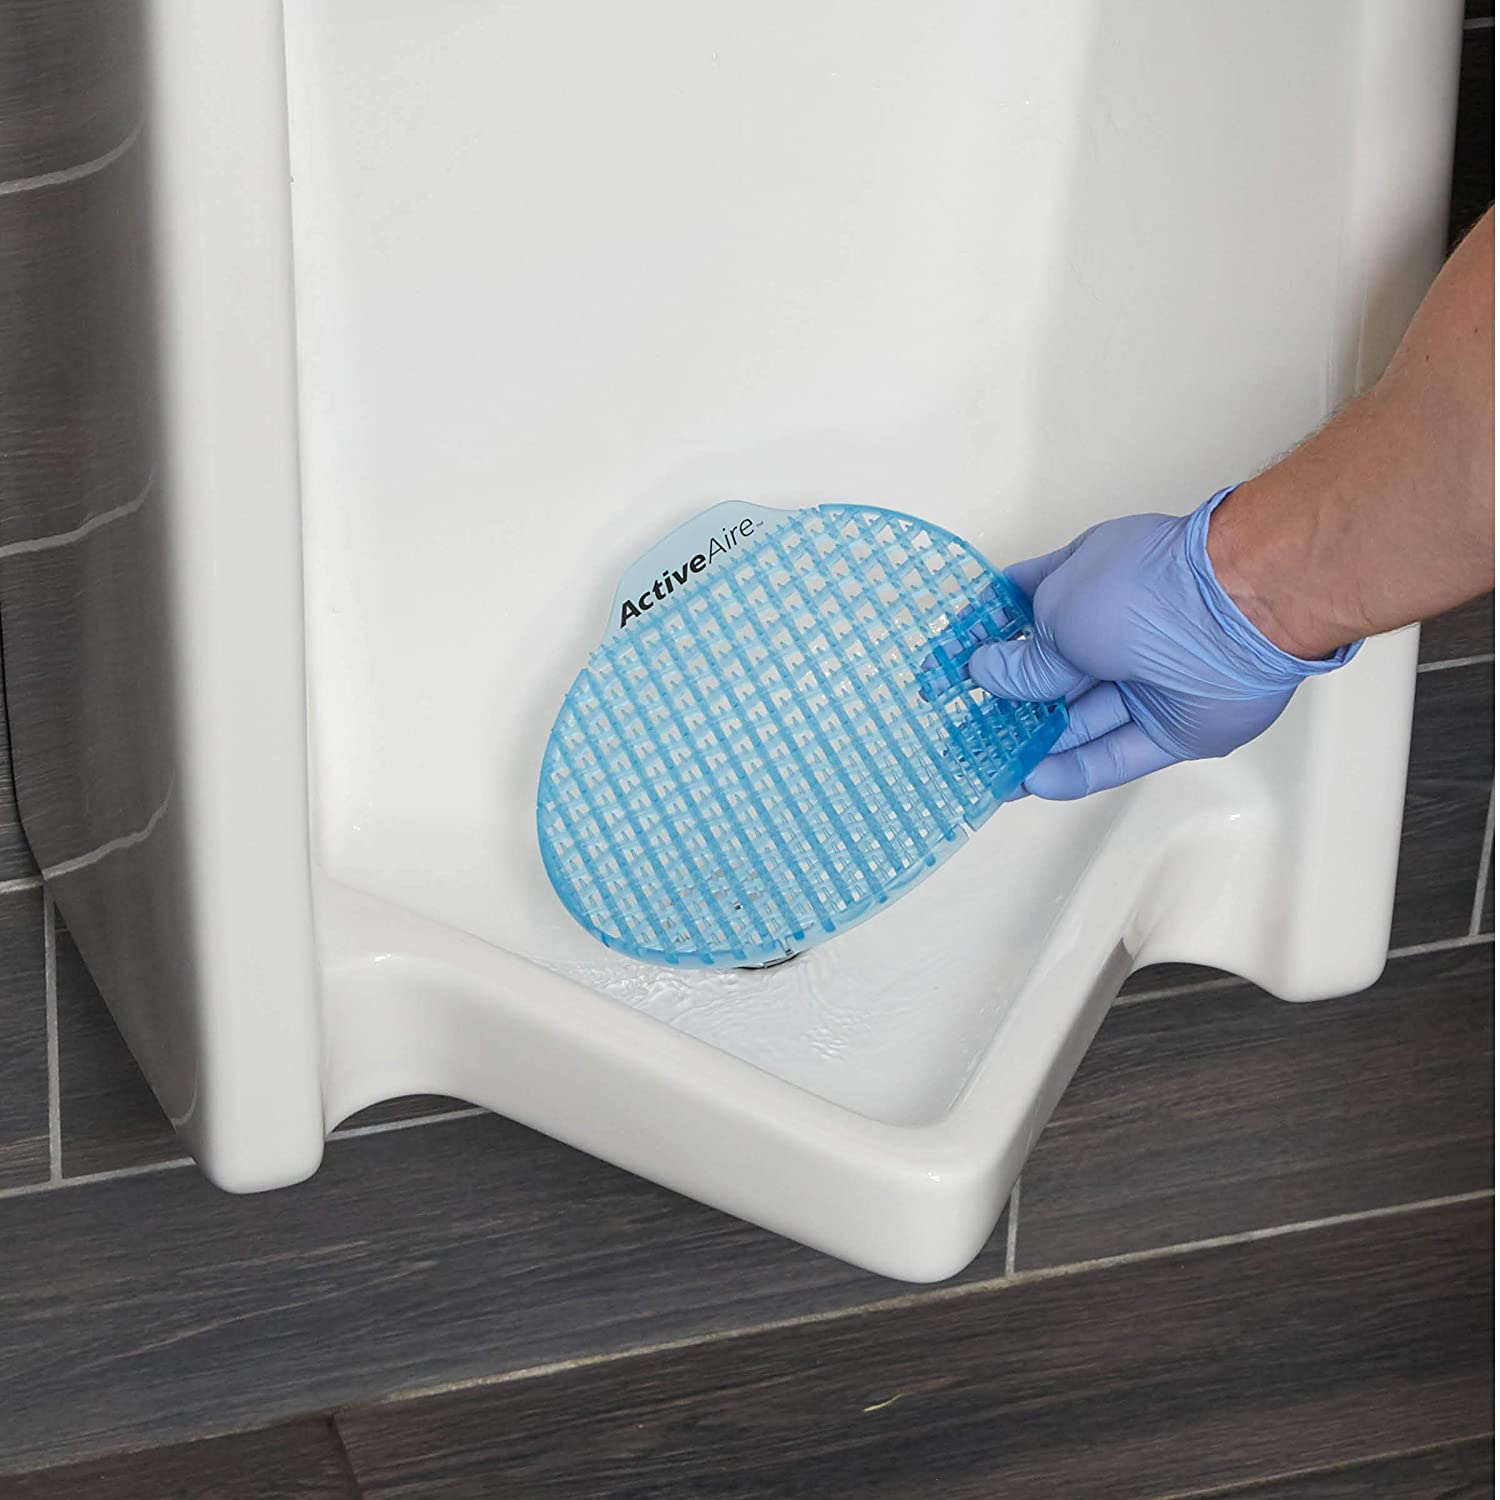 48274 ActiveAire Deodorizer Urinal Screen by GP PRO Pacific Meadow Georgia-Pacific 12 Screens Per Case